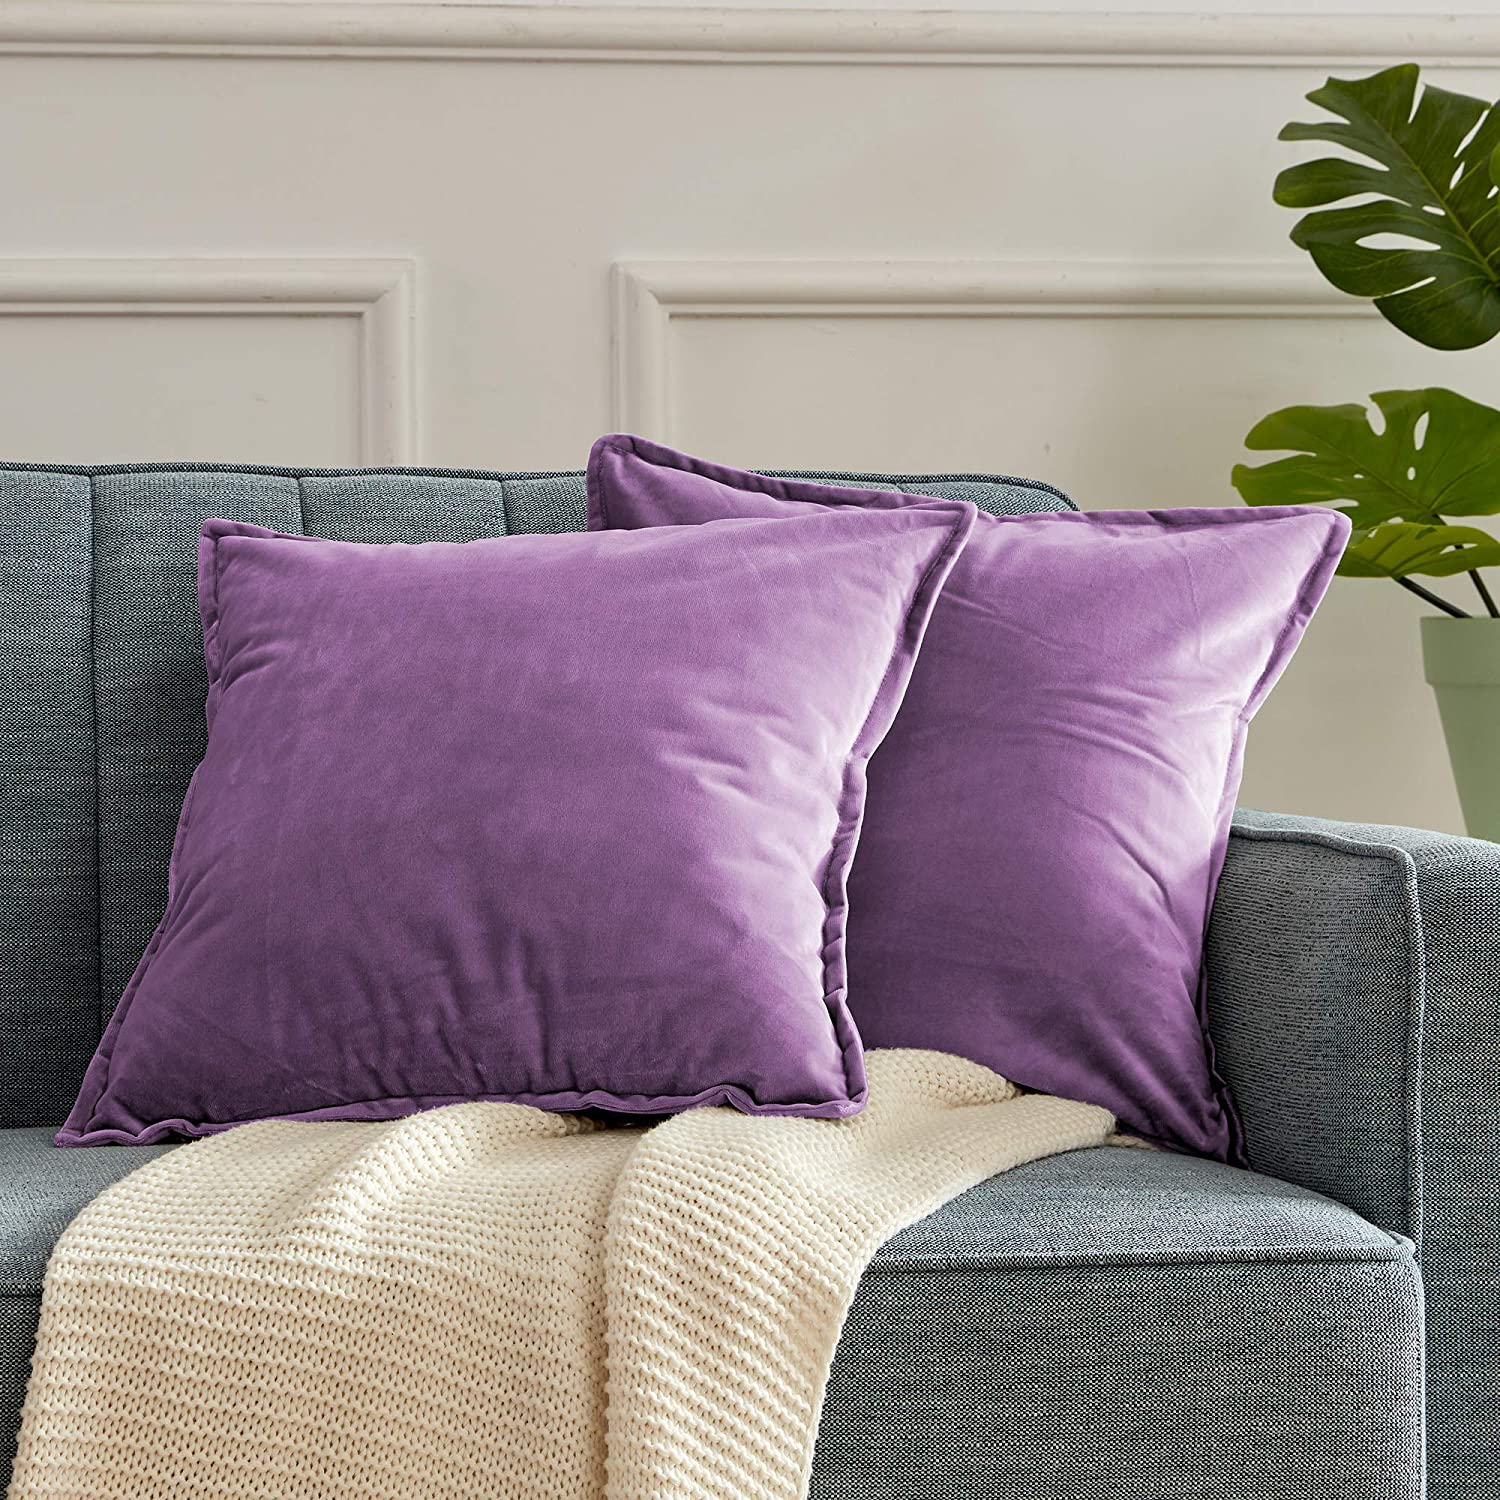 SLEEP ZONE Set of 2 Velvet Throw Pillow Covers Decorative Square Pillowcase Soft Solid Cushion Case for Couch Sofa Bed Chair, 18 x 18 inch, Purple